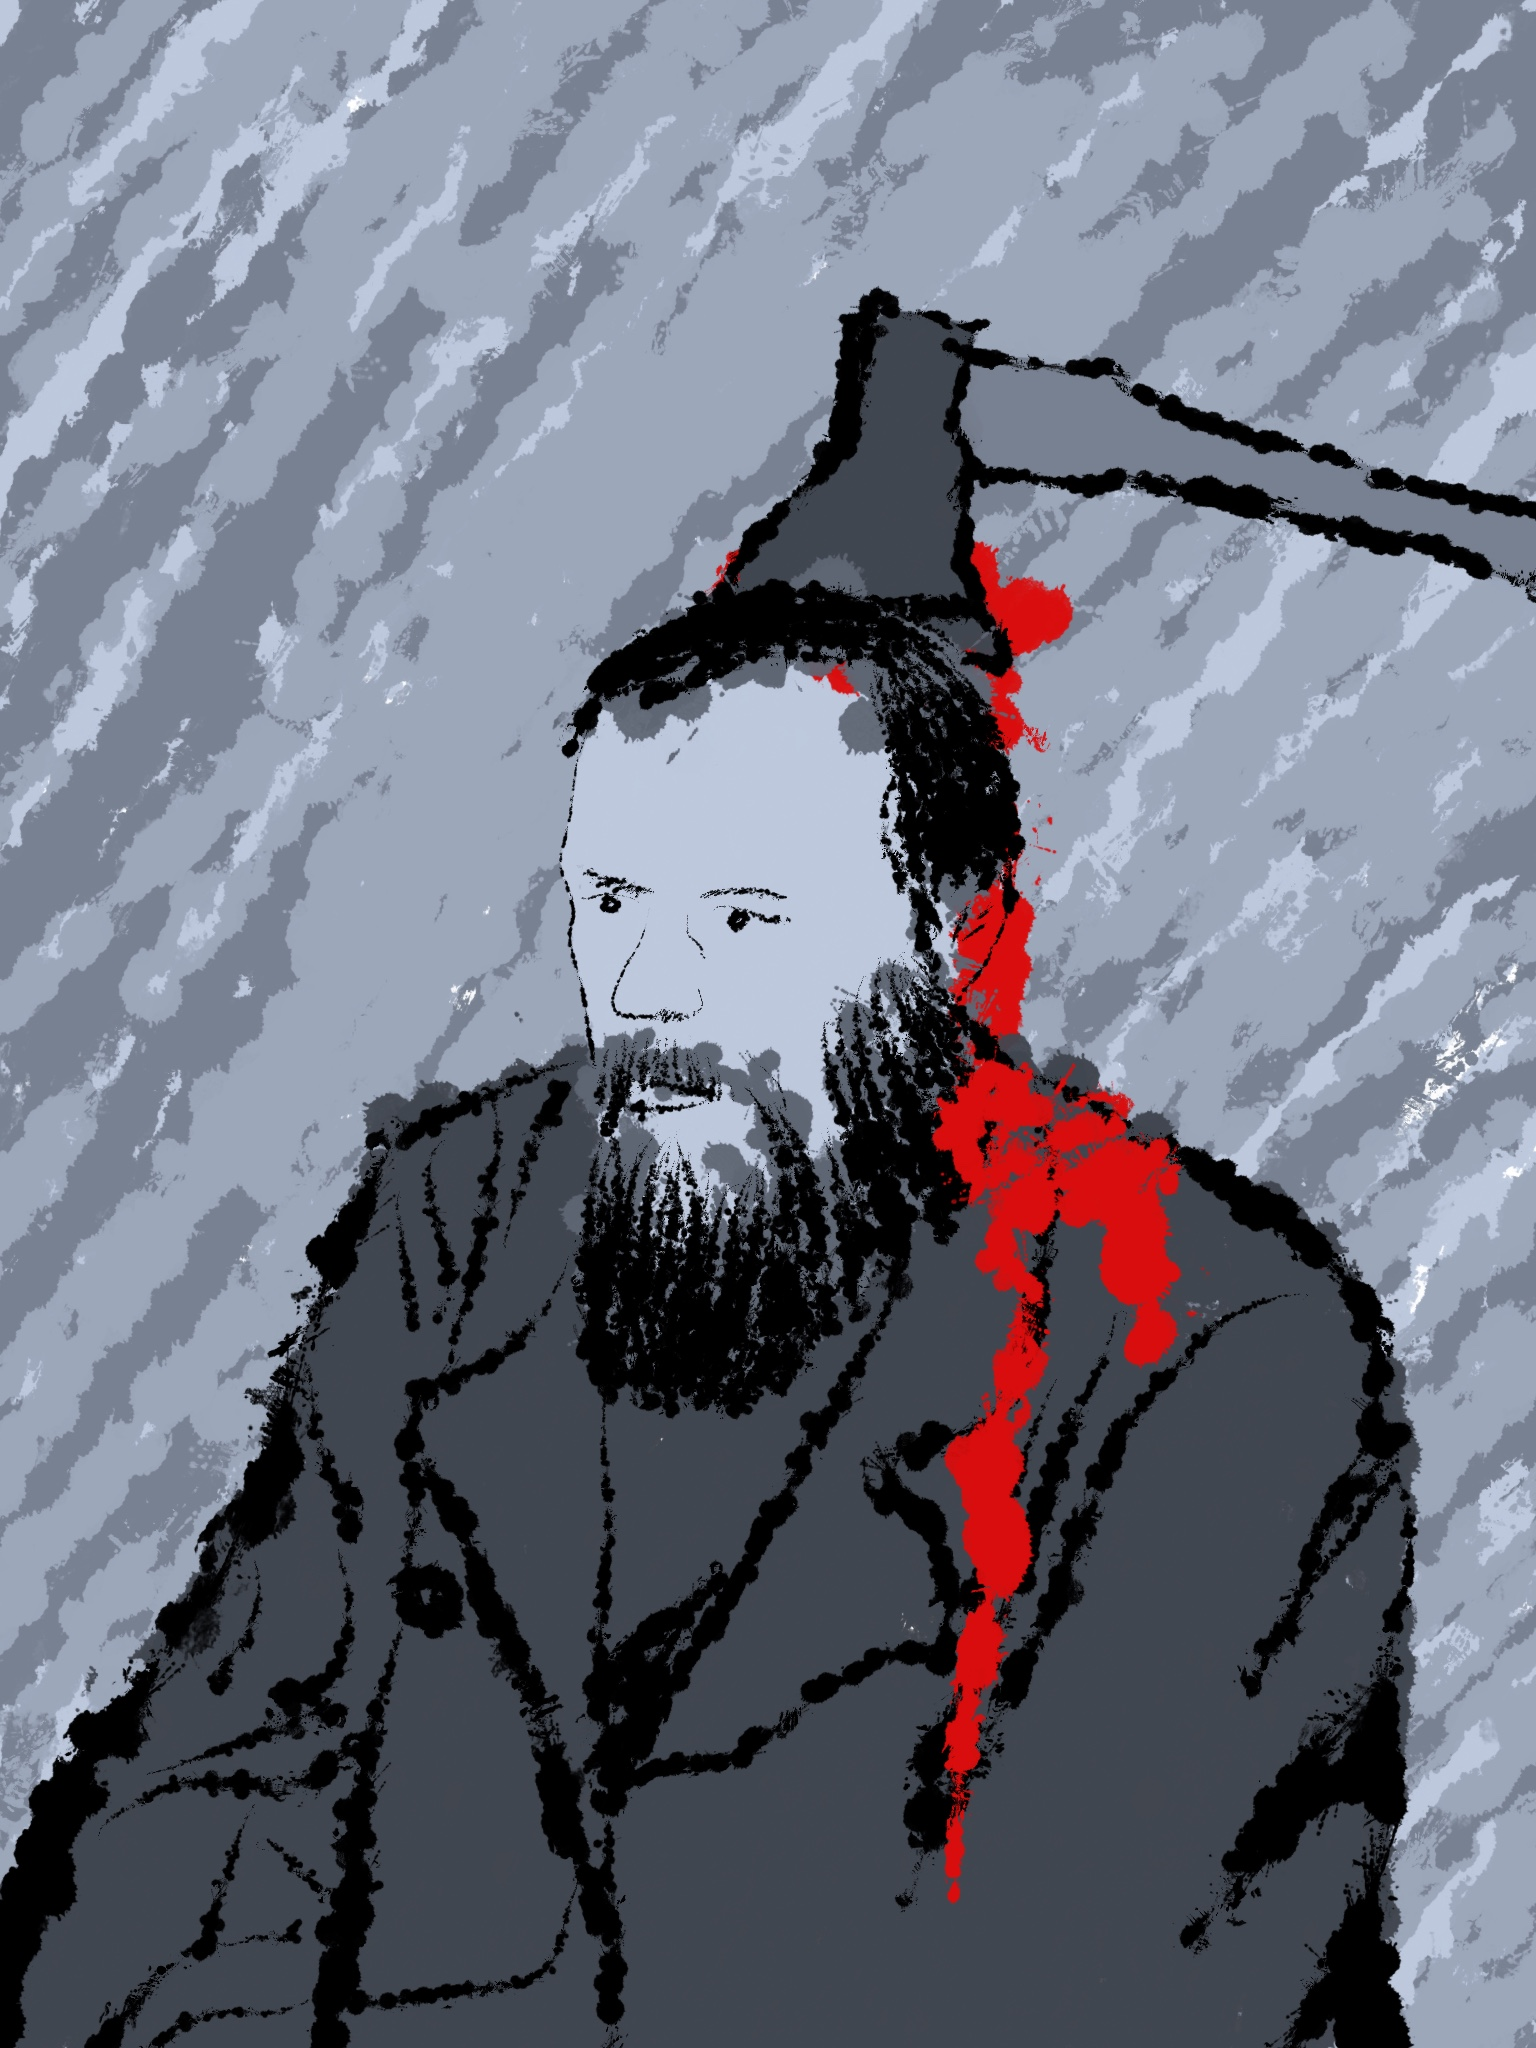 10 - Dostoyevsky (d, s) Fyodor Dostoyevsky with an axe in his head